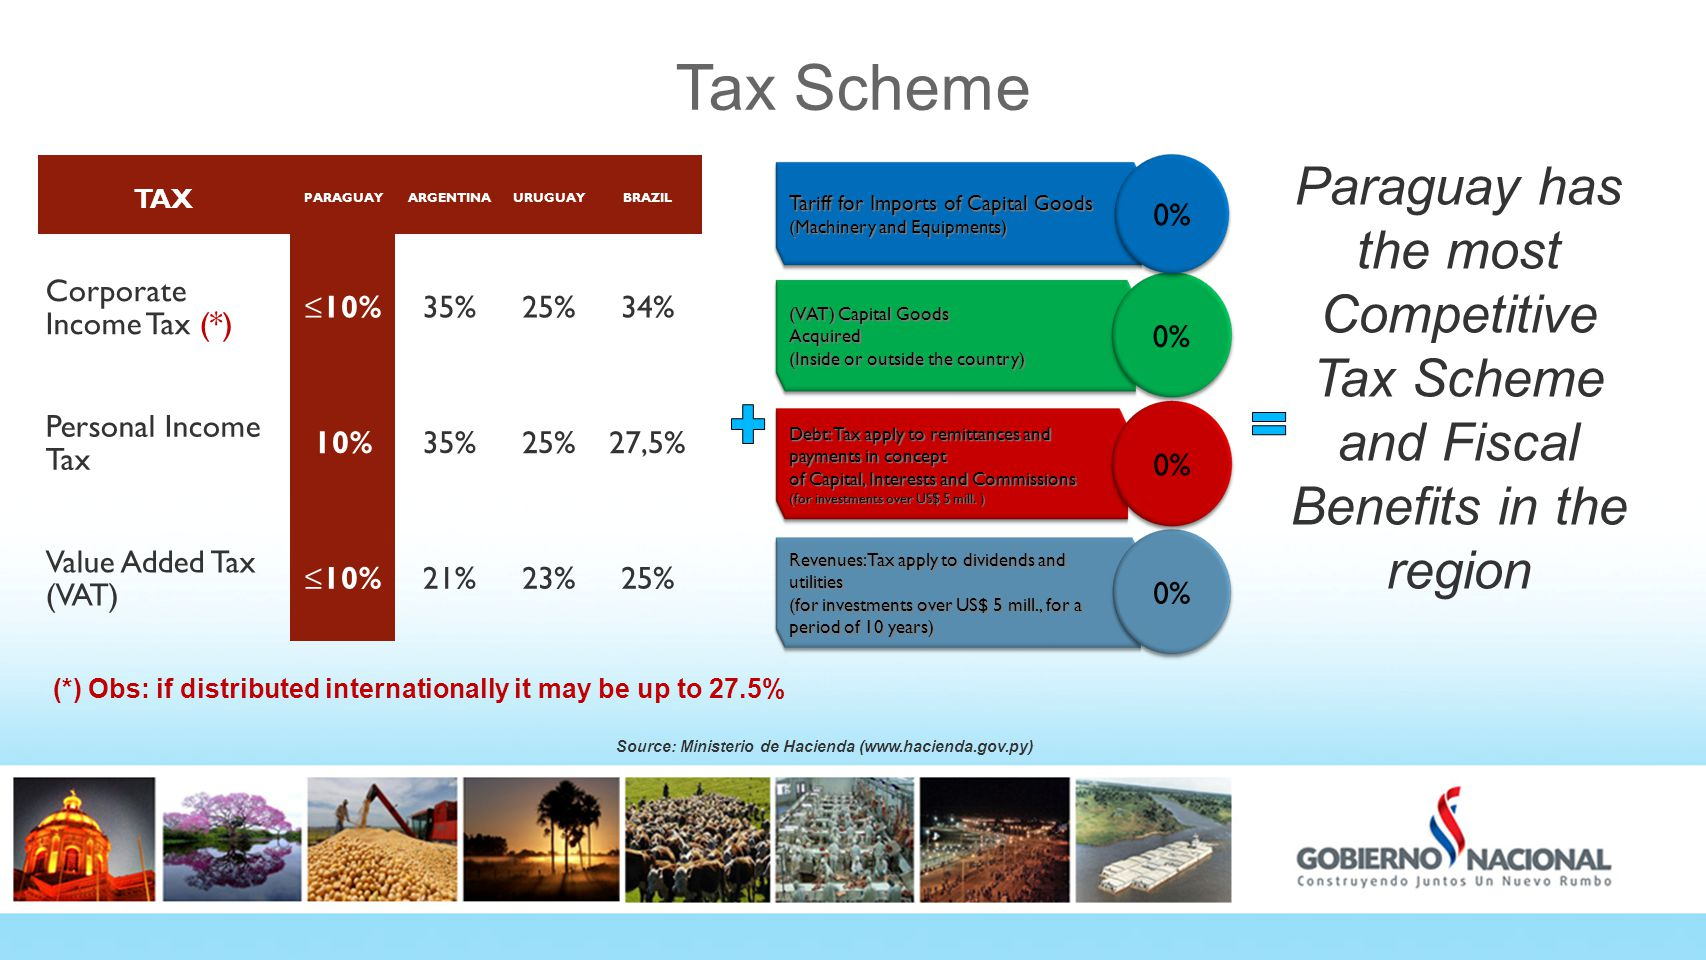 Tax Scheme Paraguay has the most Competitive Tax Scheme and Fiscal Benefits in the region Revenues: Tax apply to dividends and utilities (for investments over US$ 5 mill., for a period of 10 years) 0% Debt: Tax apply to remittances and payments in concept of Capital, Interests and Commissions (for investments over US$ 5 mill.